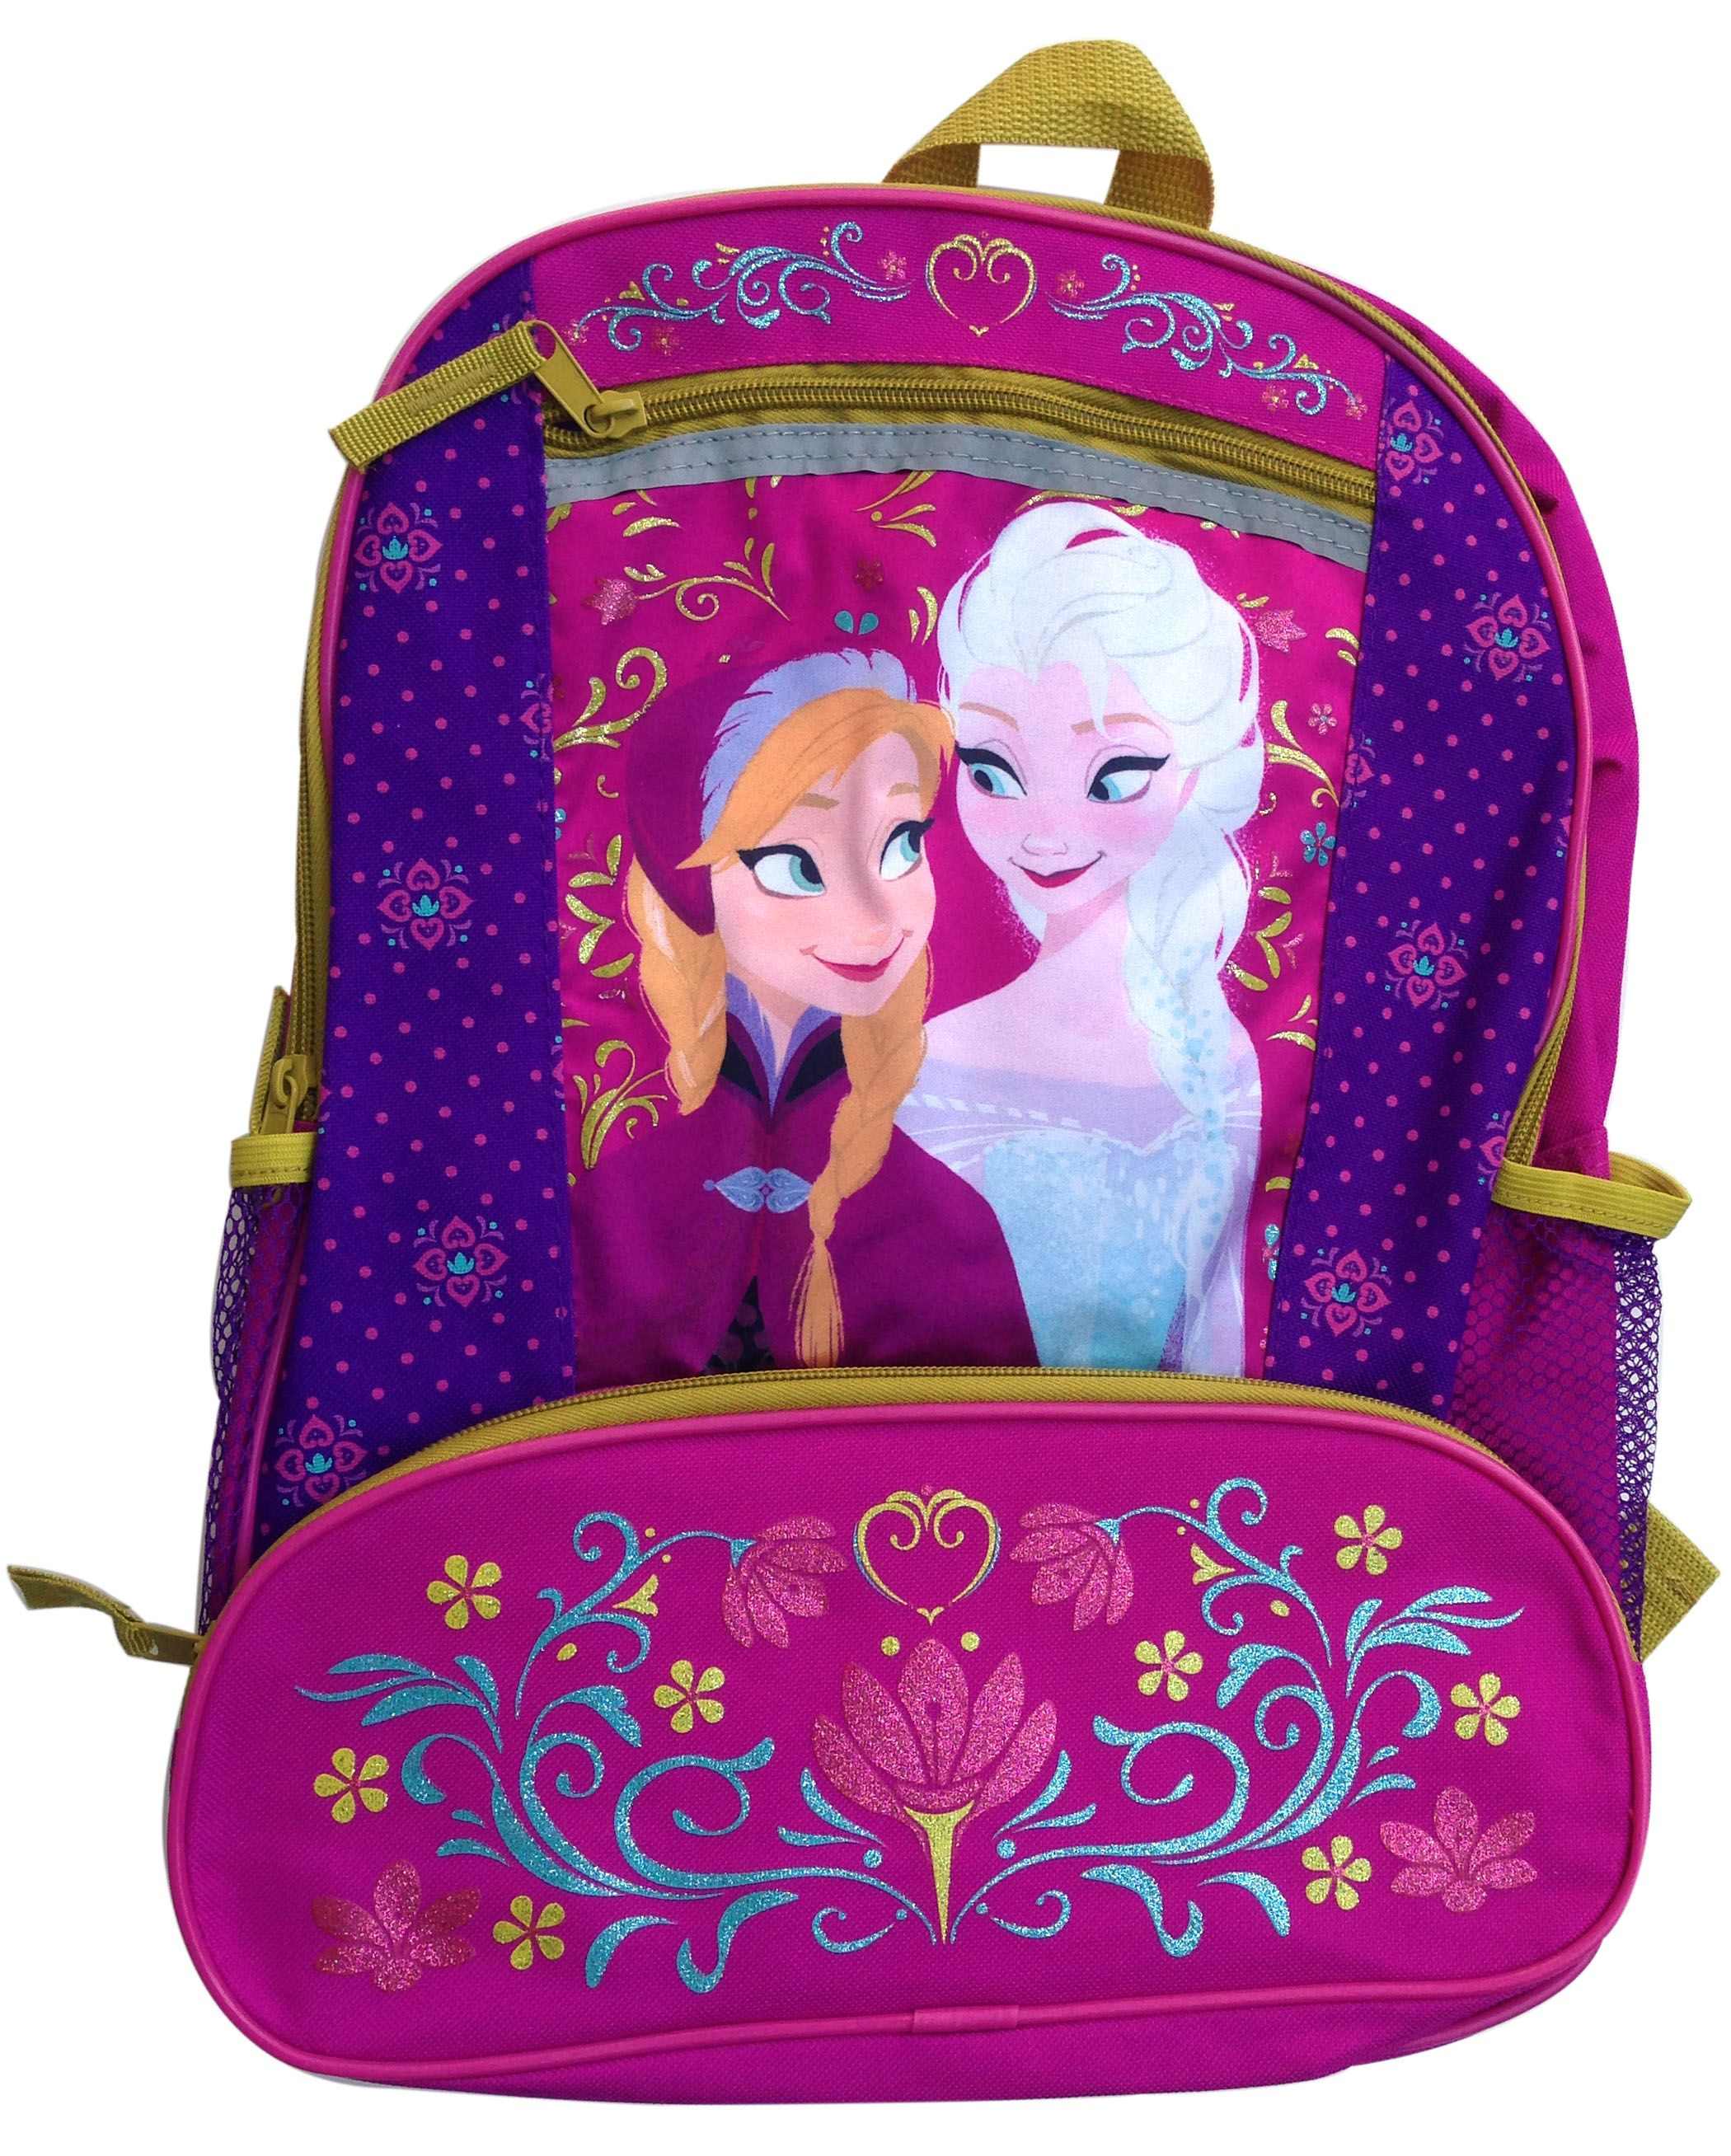 b456499fcc5 Disney Frozen Elsa and Anna Backpack - featuring Folklore  Rosemaling  design  GlobalDesignConcepts